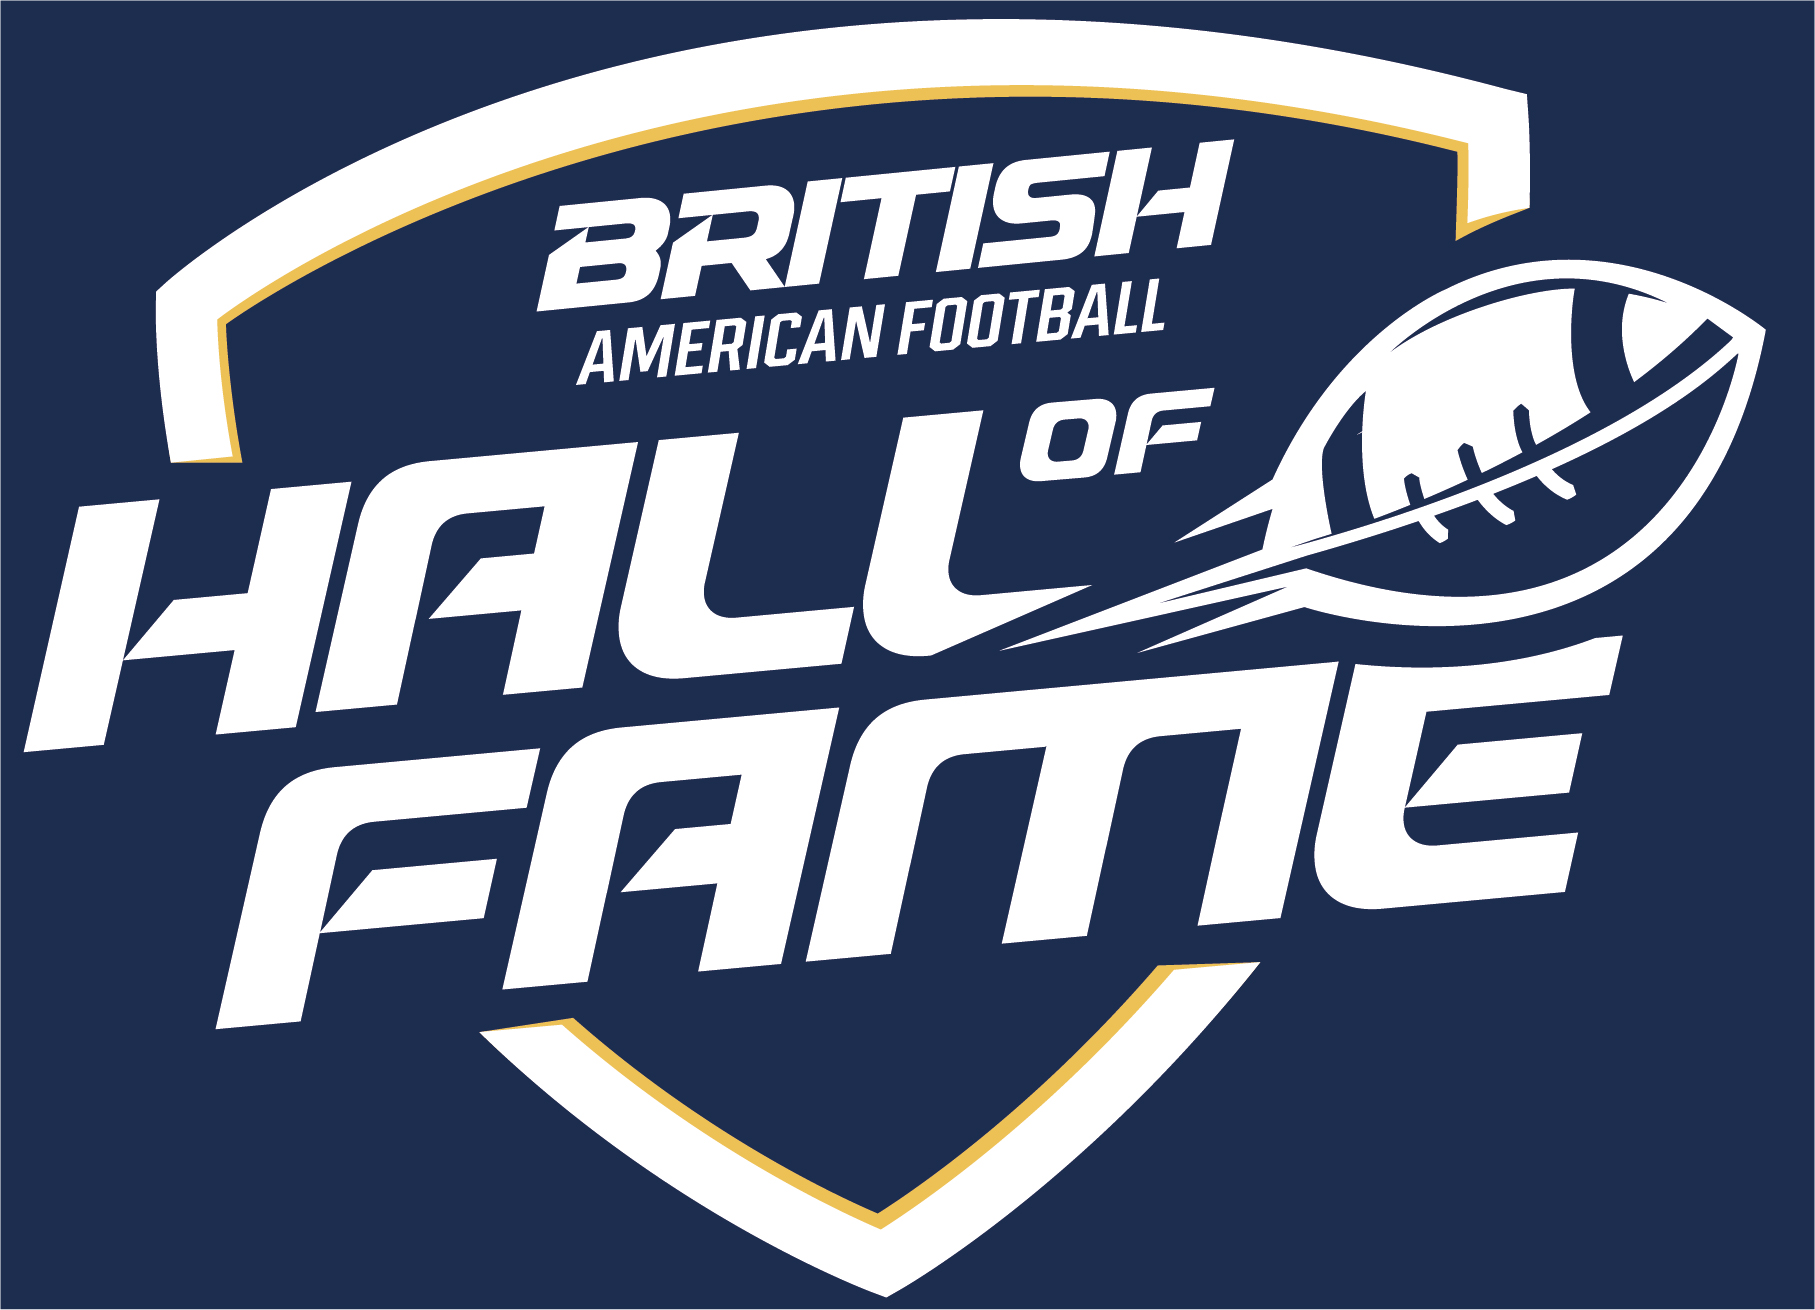 BAFA to launch new Hall of Fame and heritage website for British American football